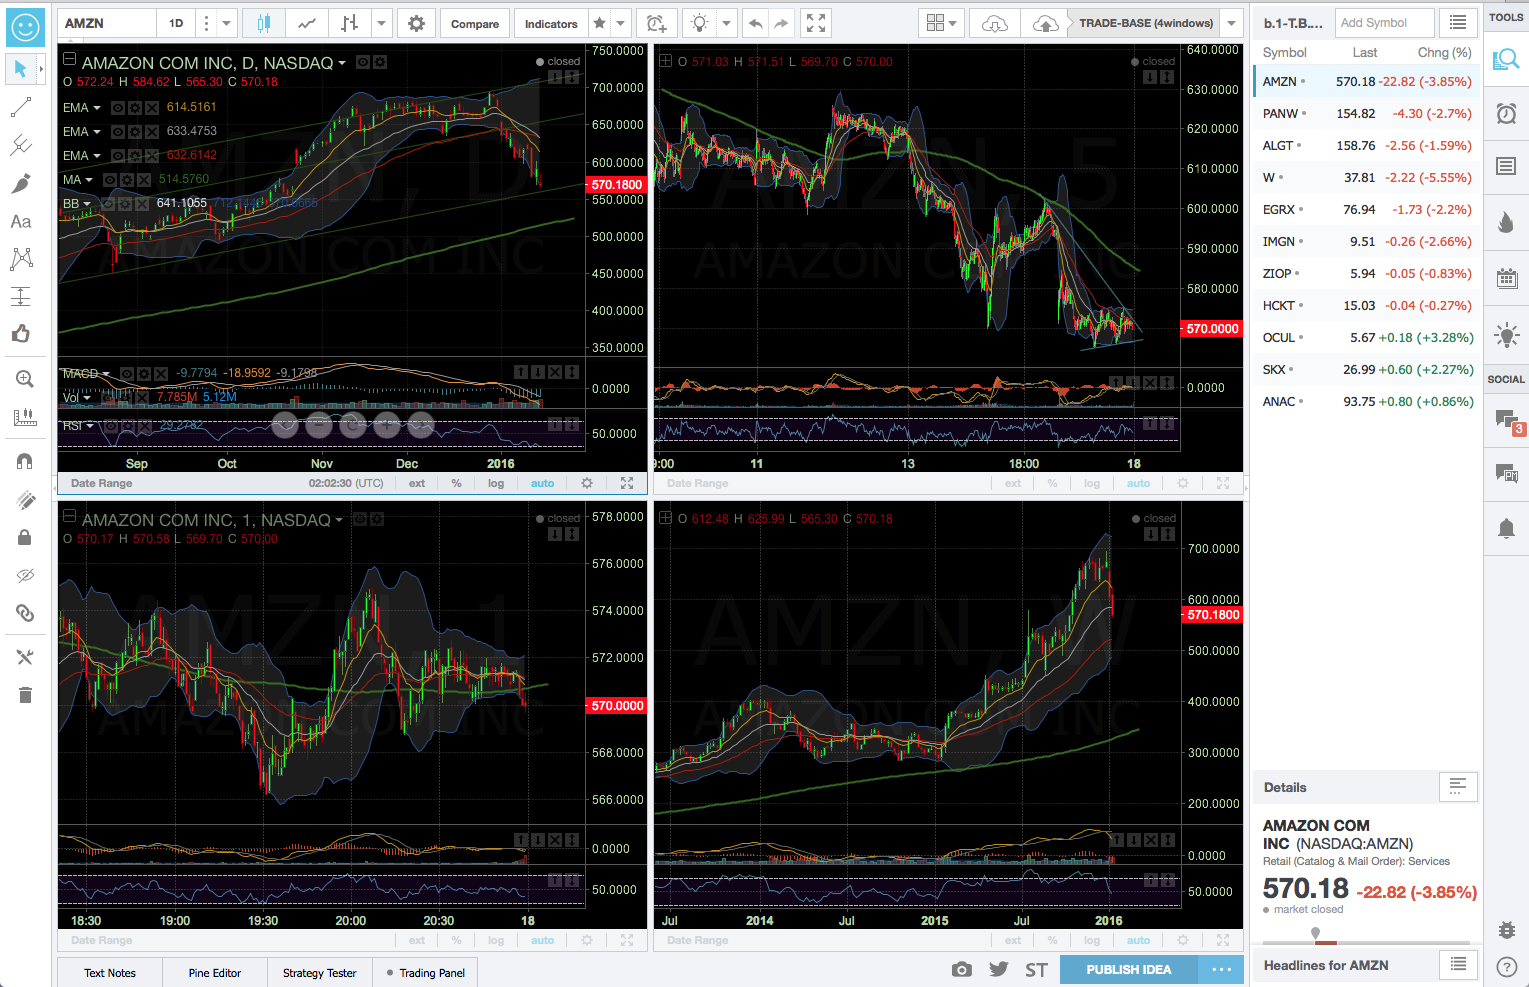 trading chart, real stream stock chart